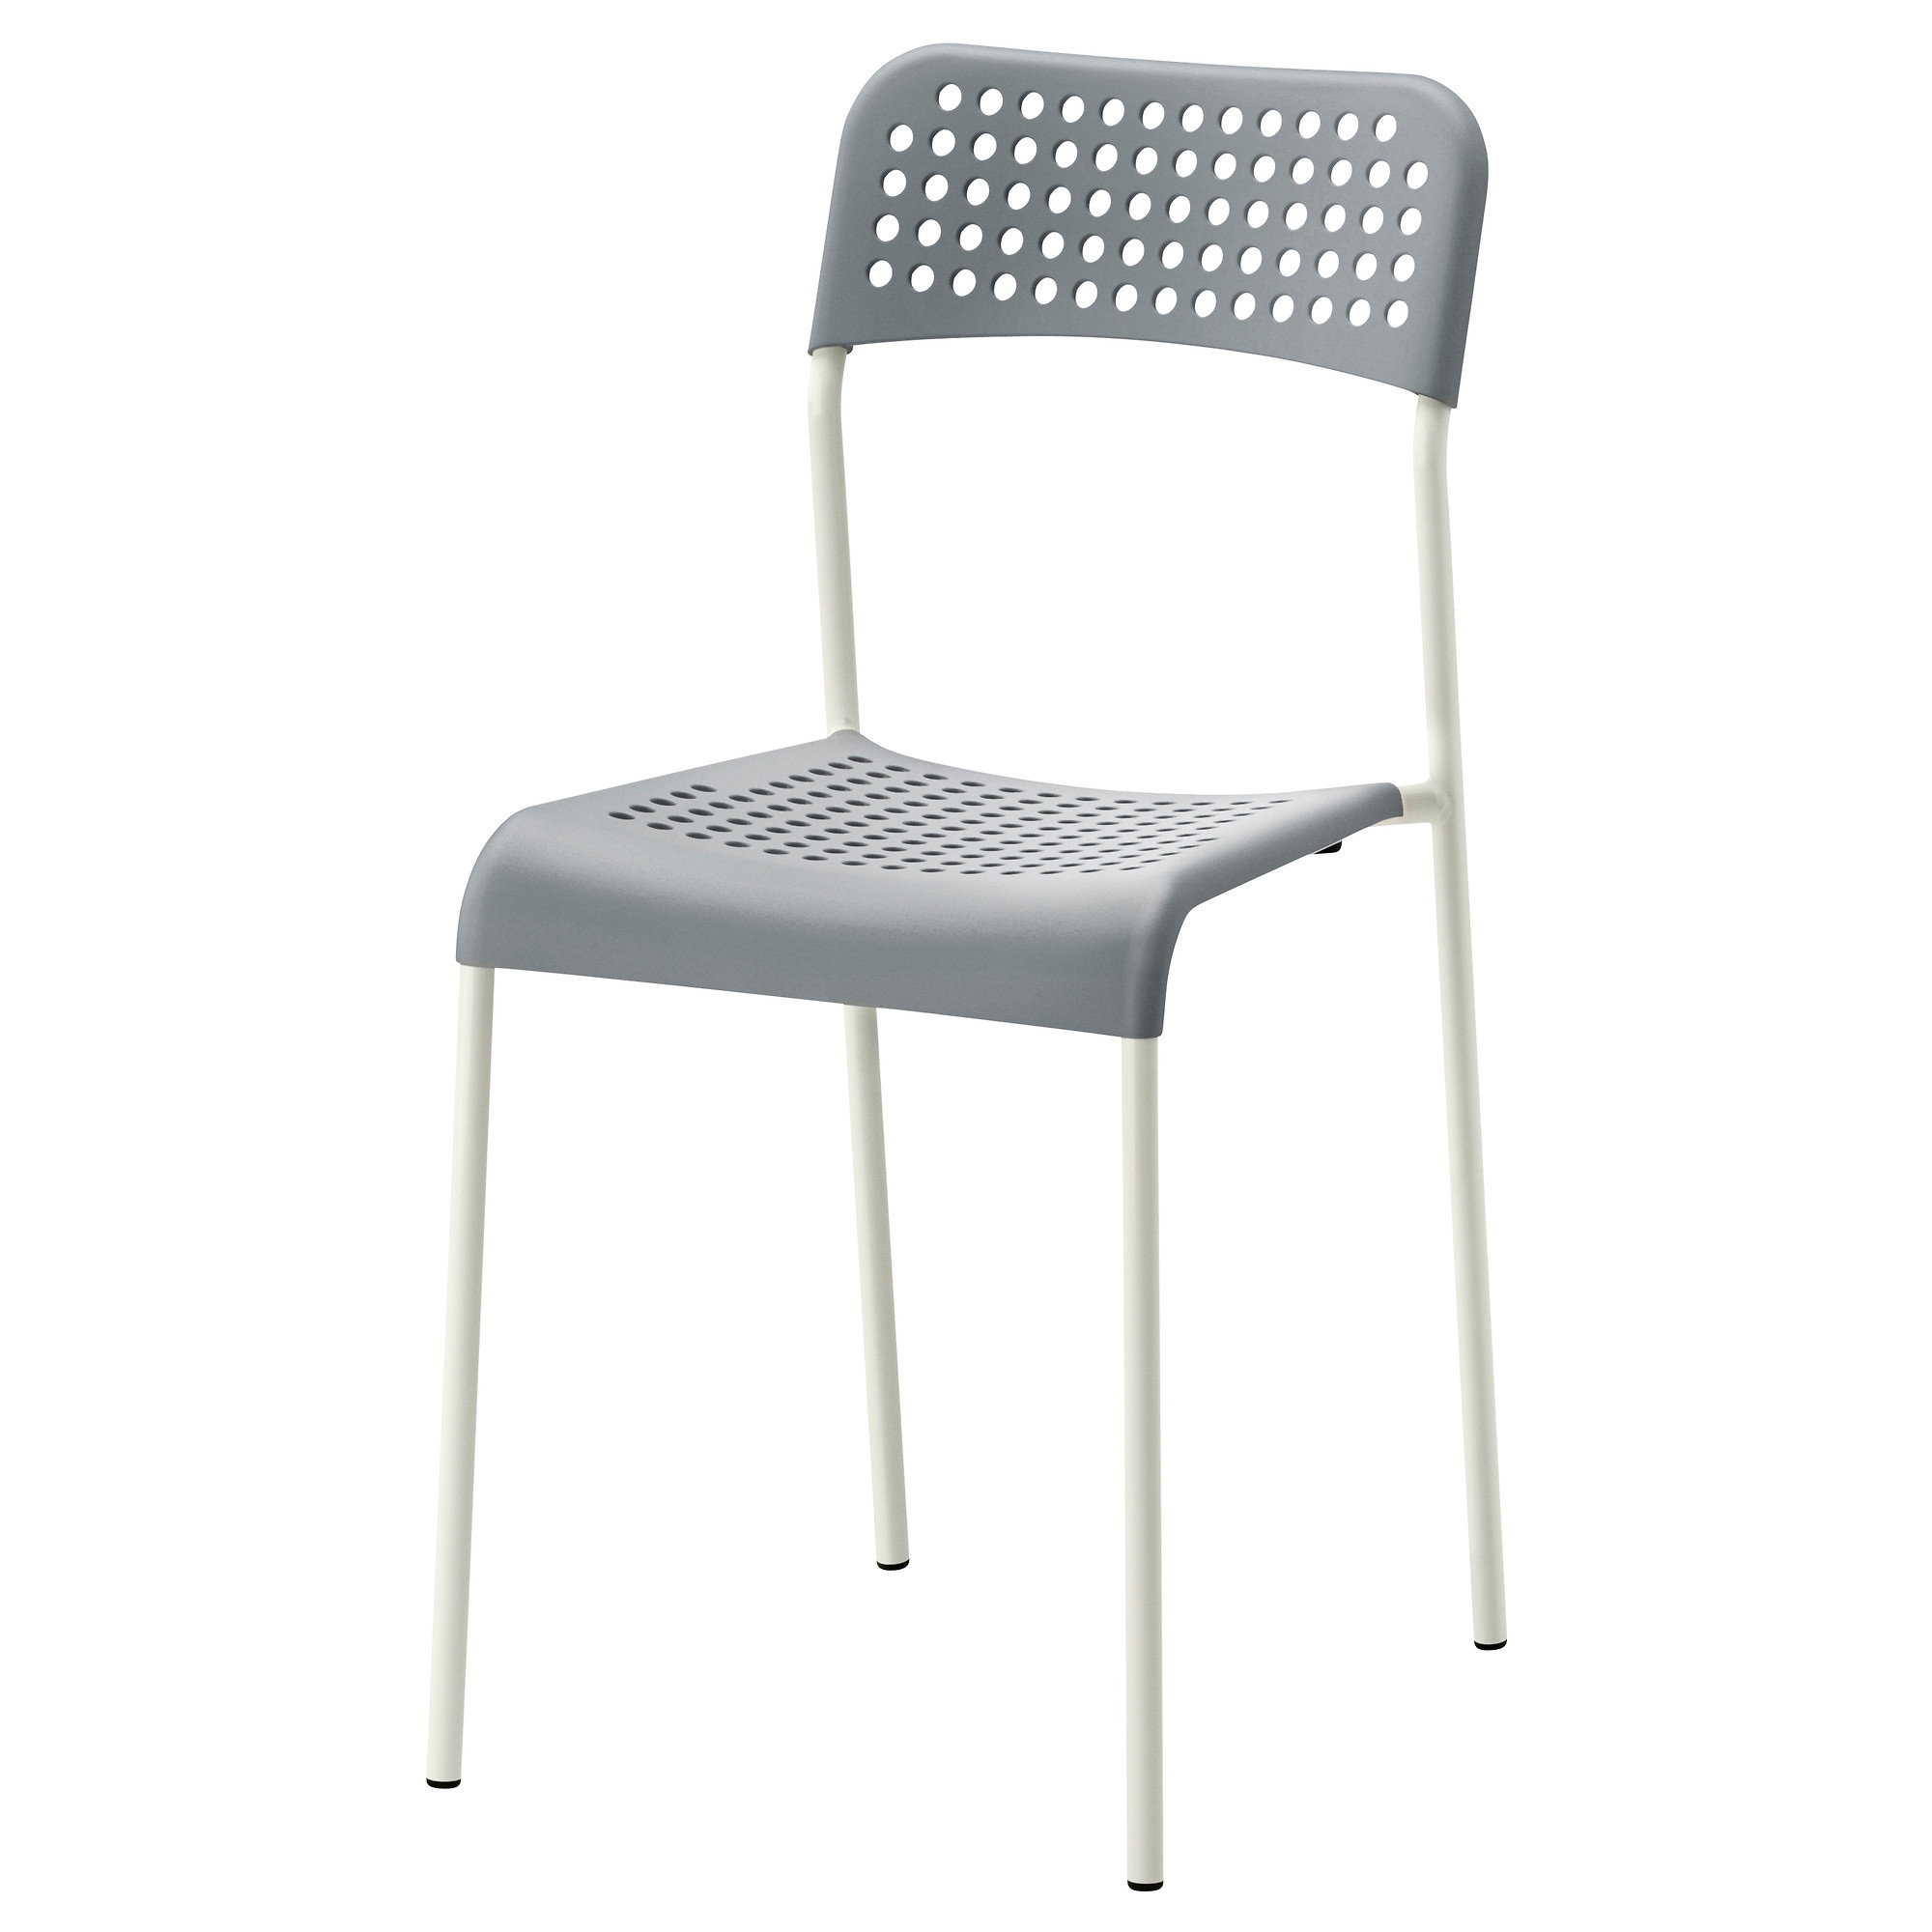 adde chair grey white tested for 110 kg width 39 cm depth